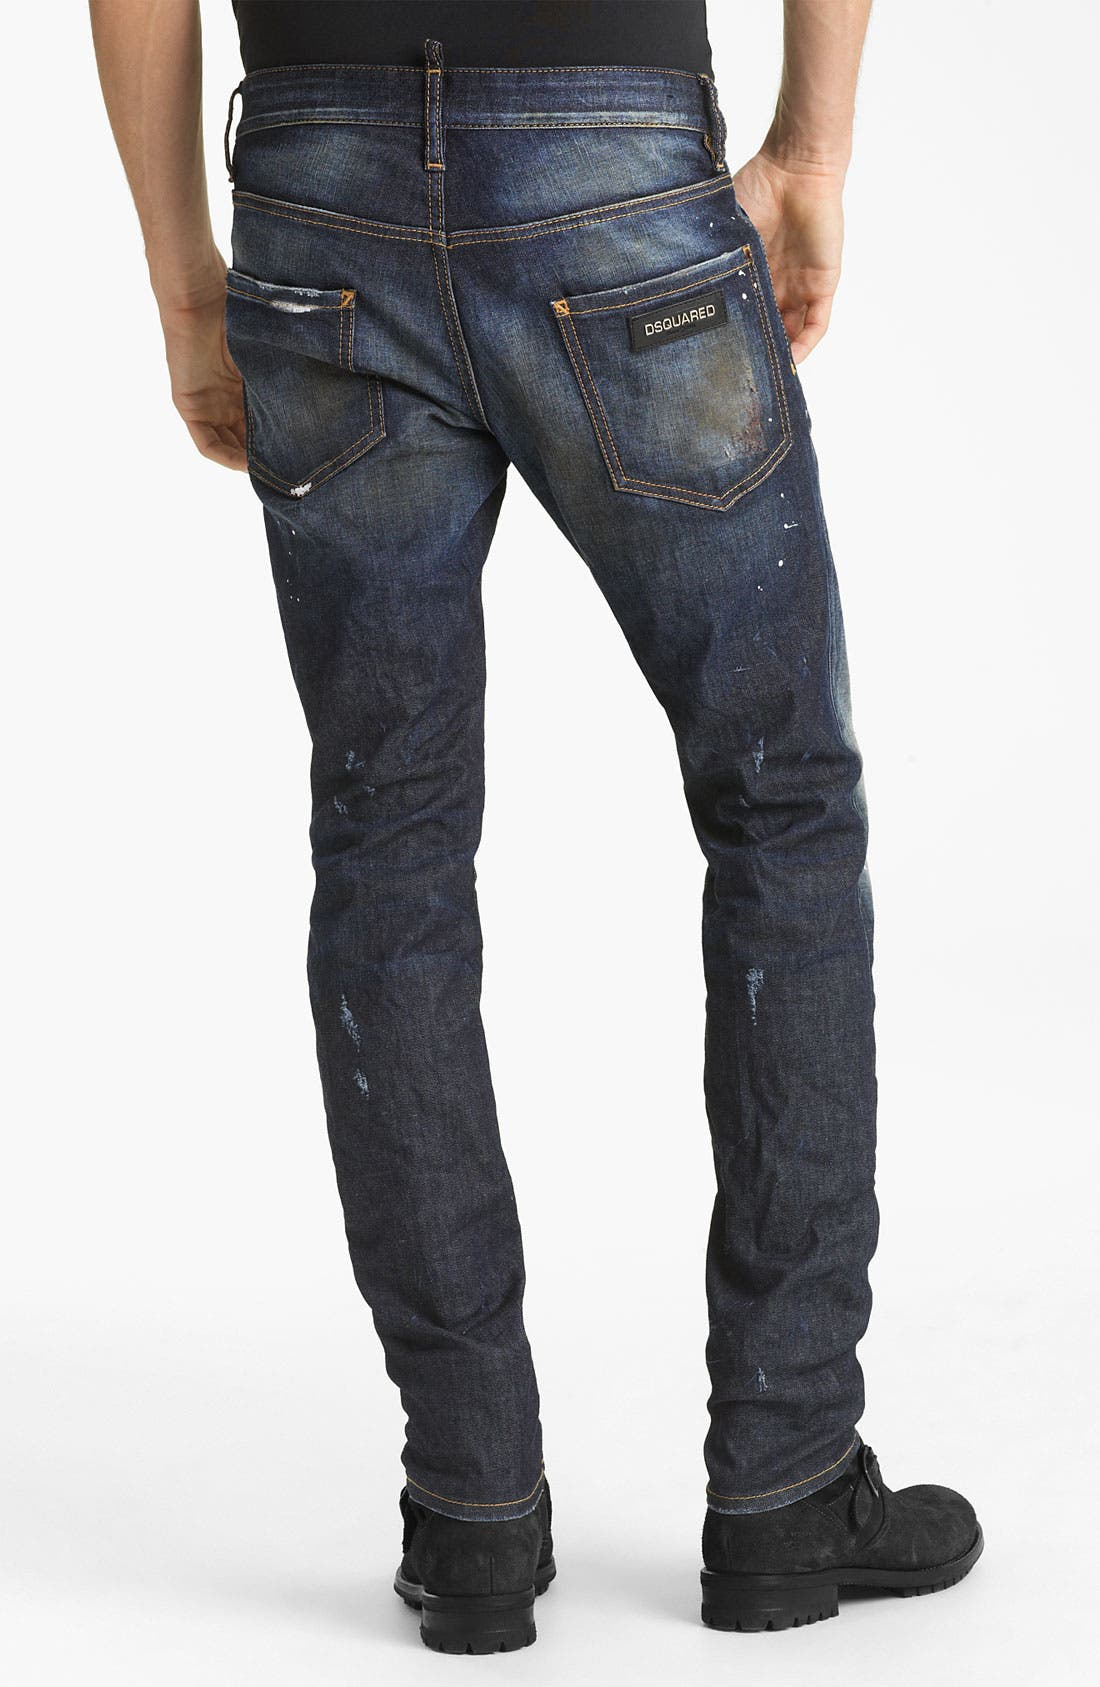 Alternate Image 1 Selected - Dsquared2 'Cool Guy' Slim Fit Jeans (Blue Wash)